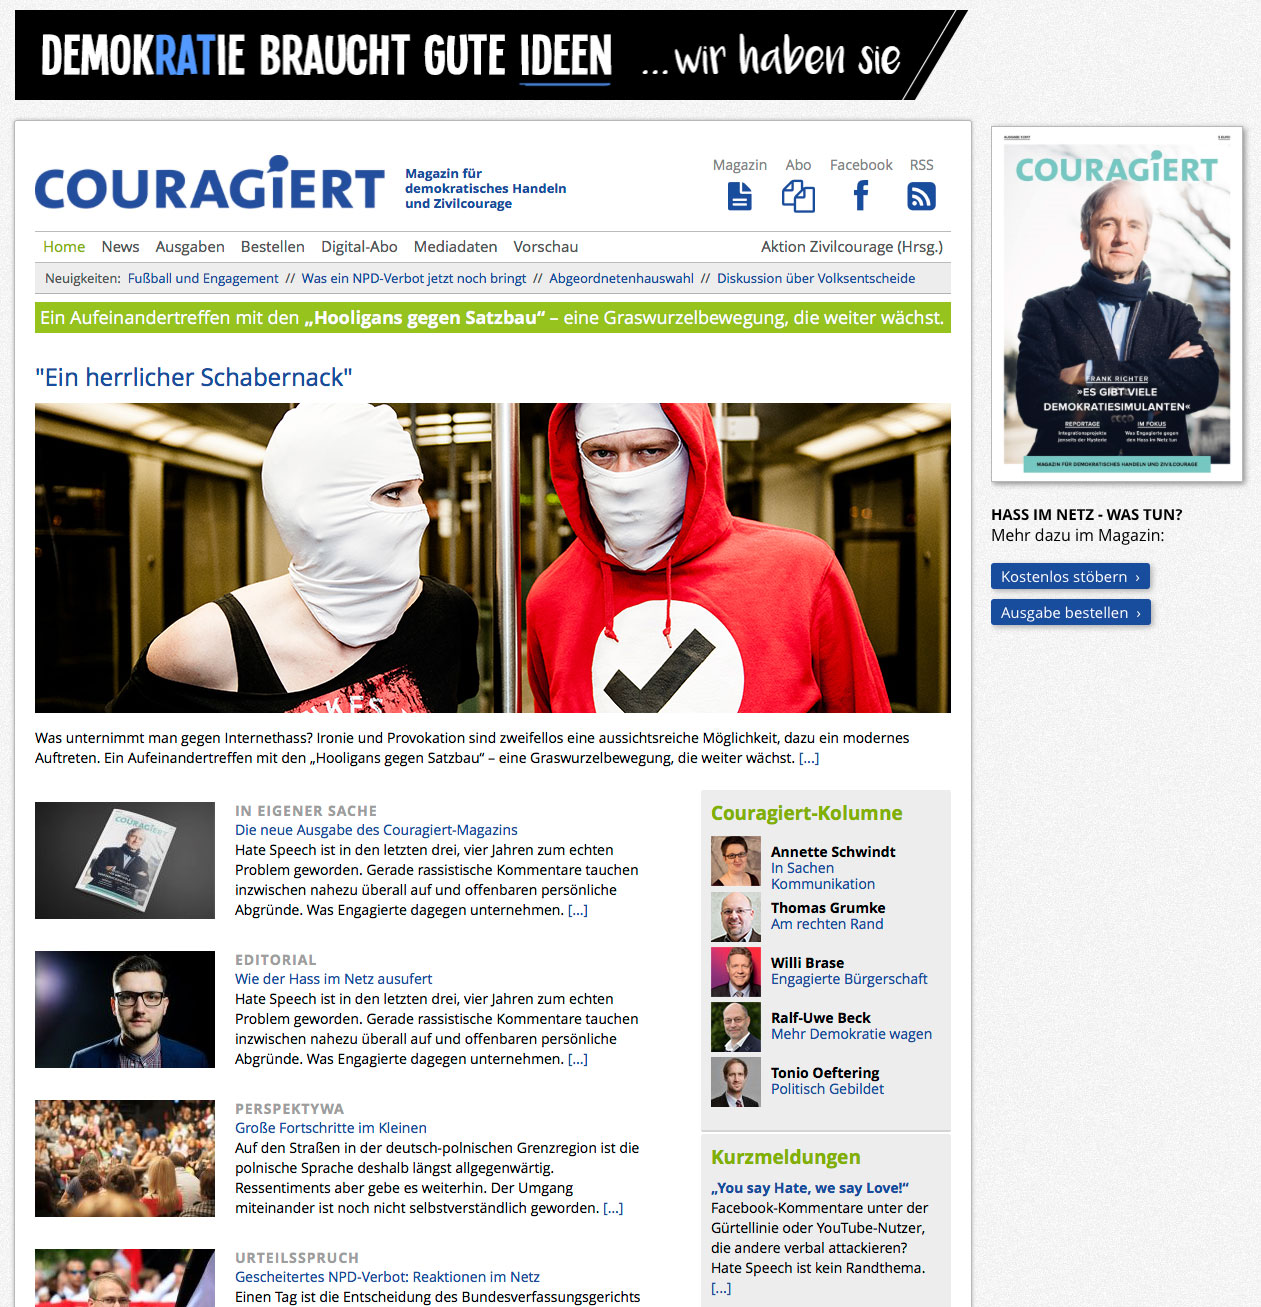 couragiert-magazin